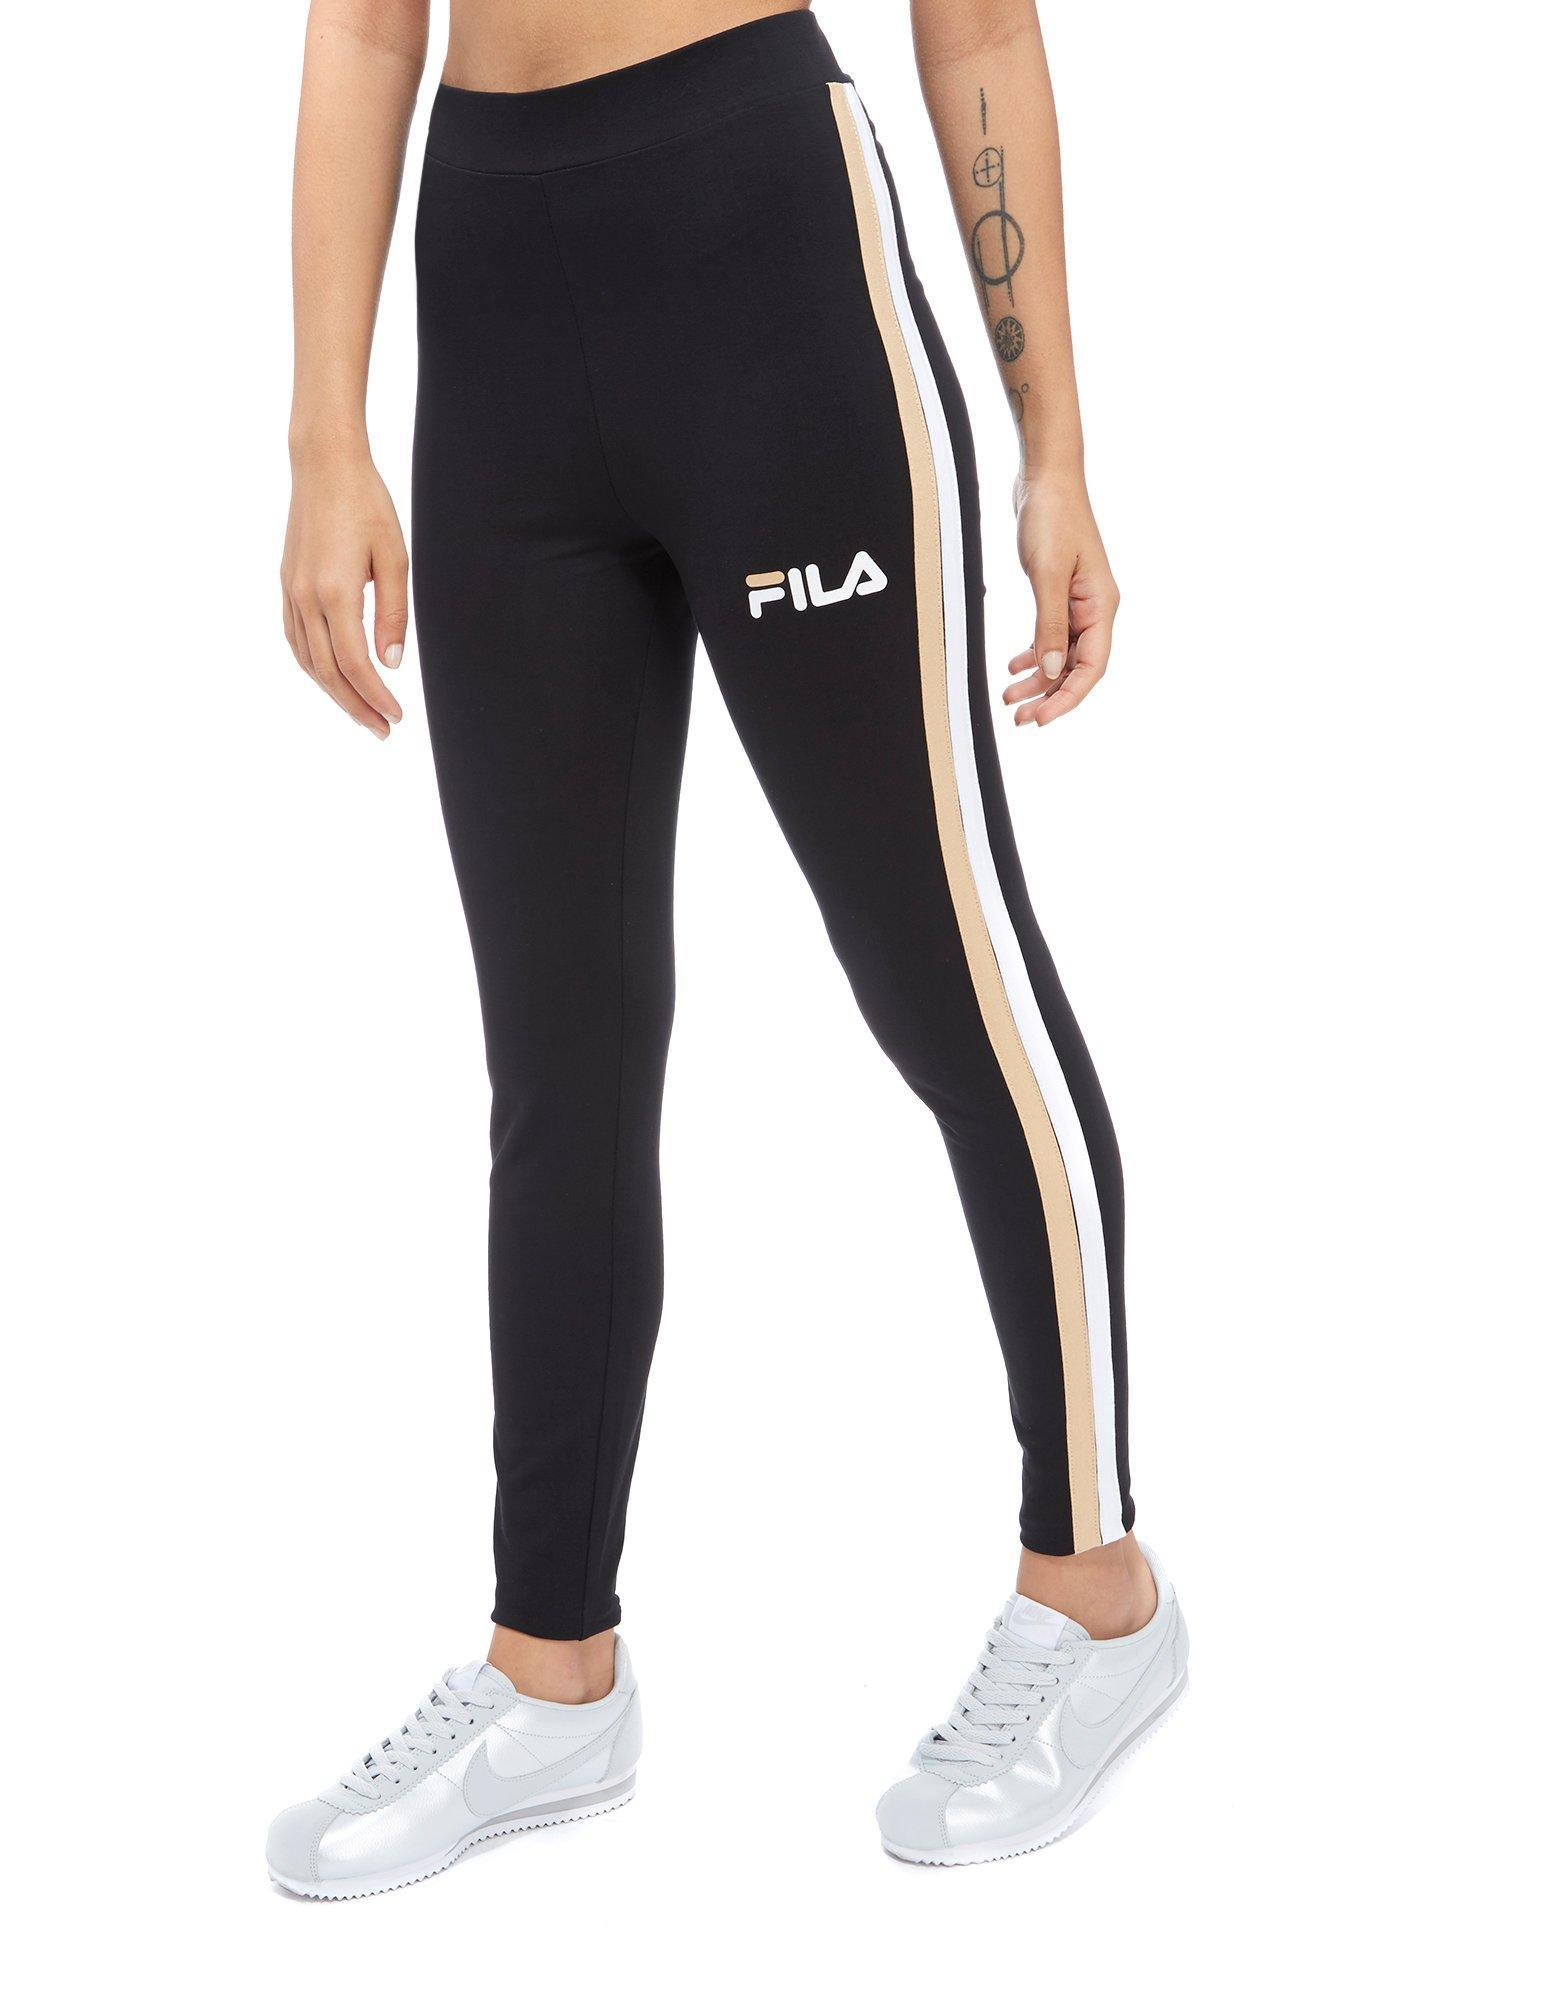 Fila Stripe Leggings - / - Womens Sale Browse p01aFohDVd